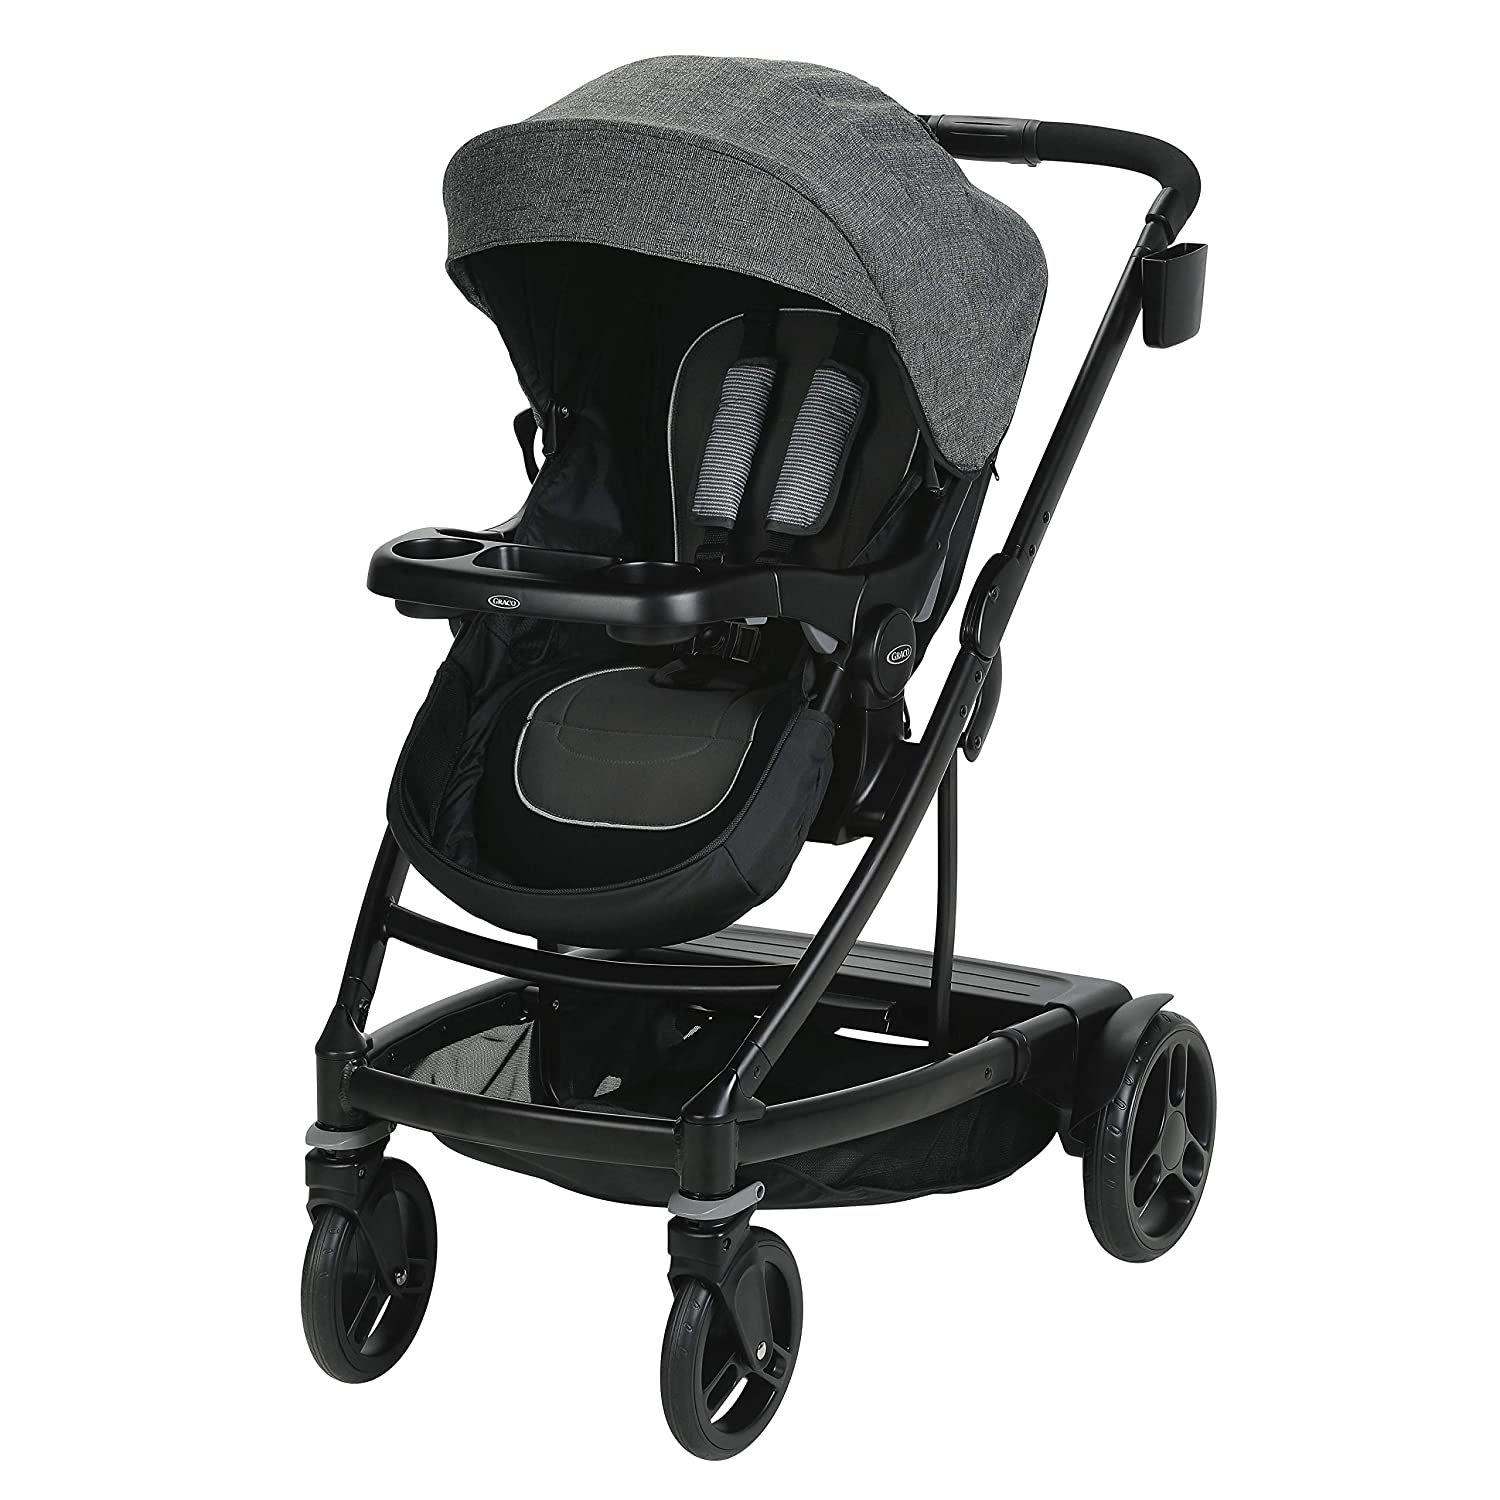 Old Graco Double Stroller Models - Stroller